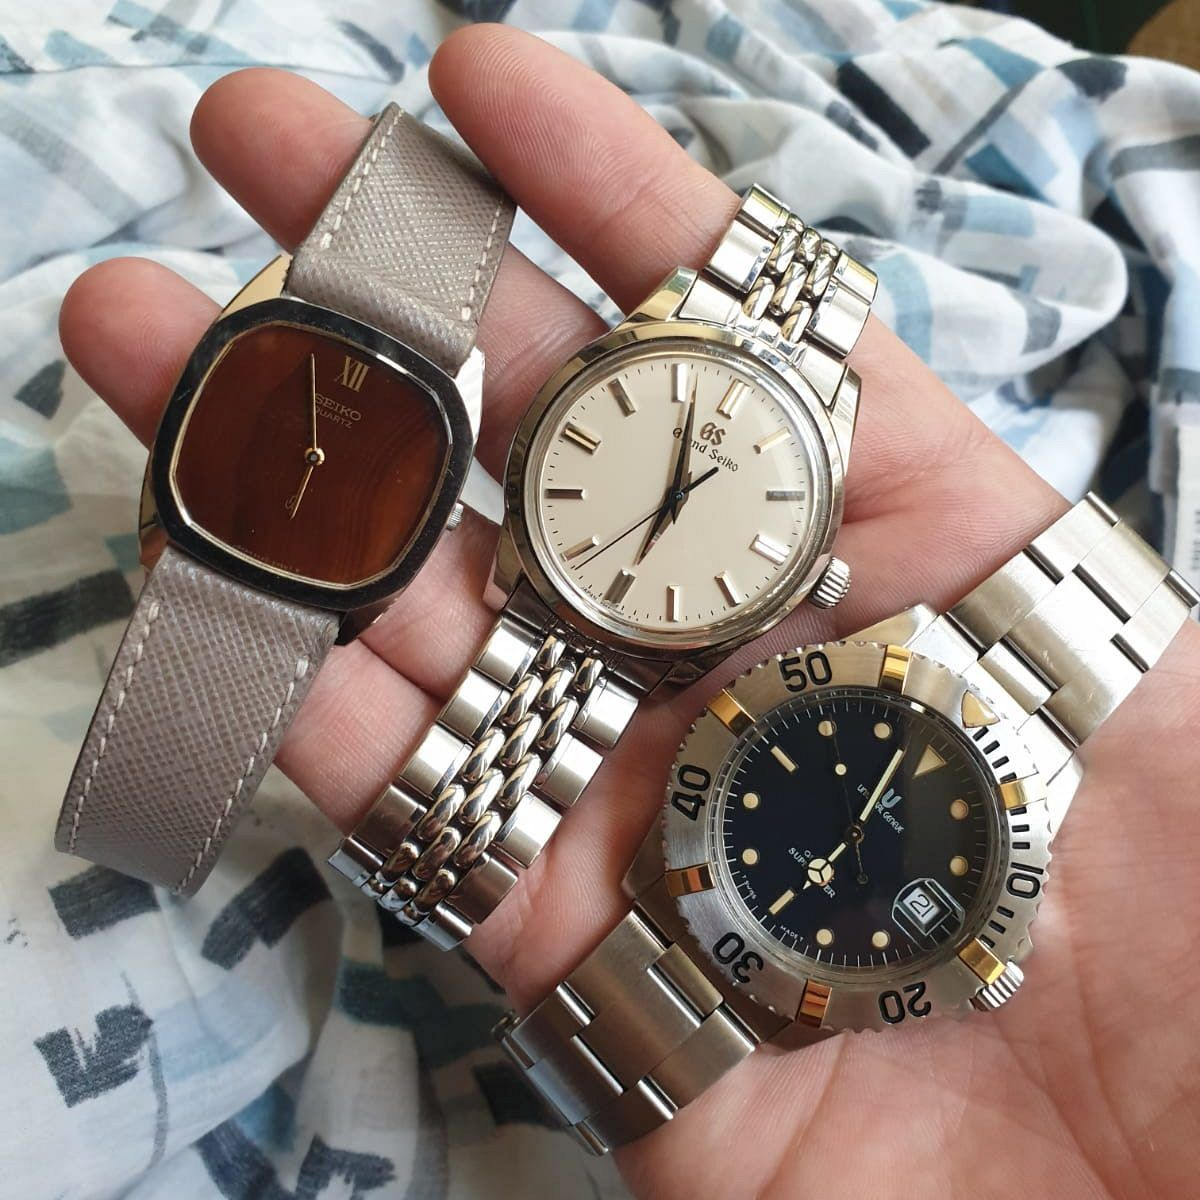 watches Nick wore most in 2020